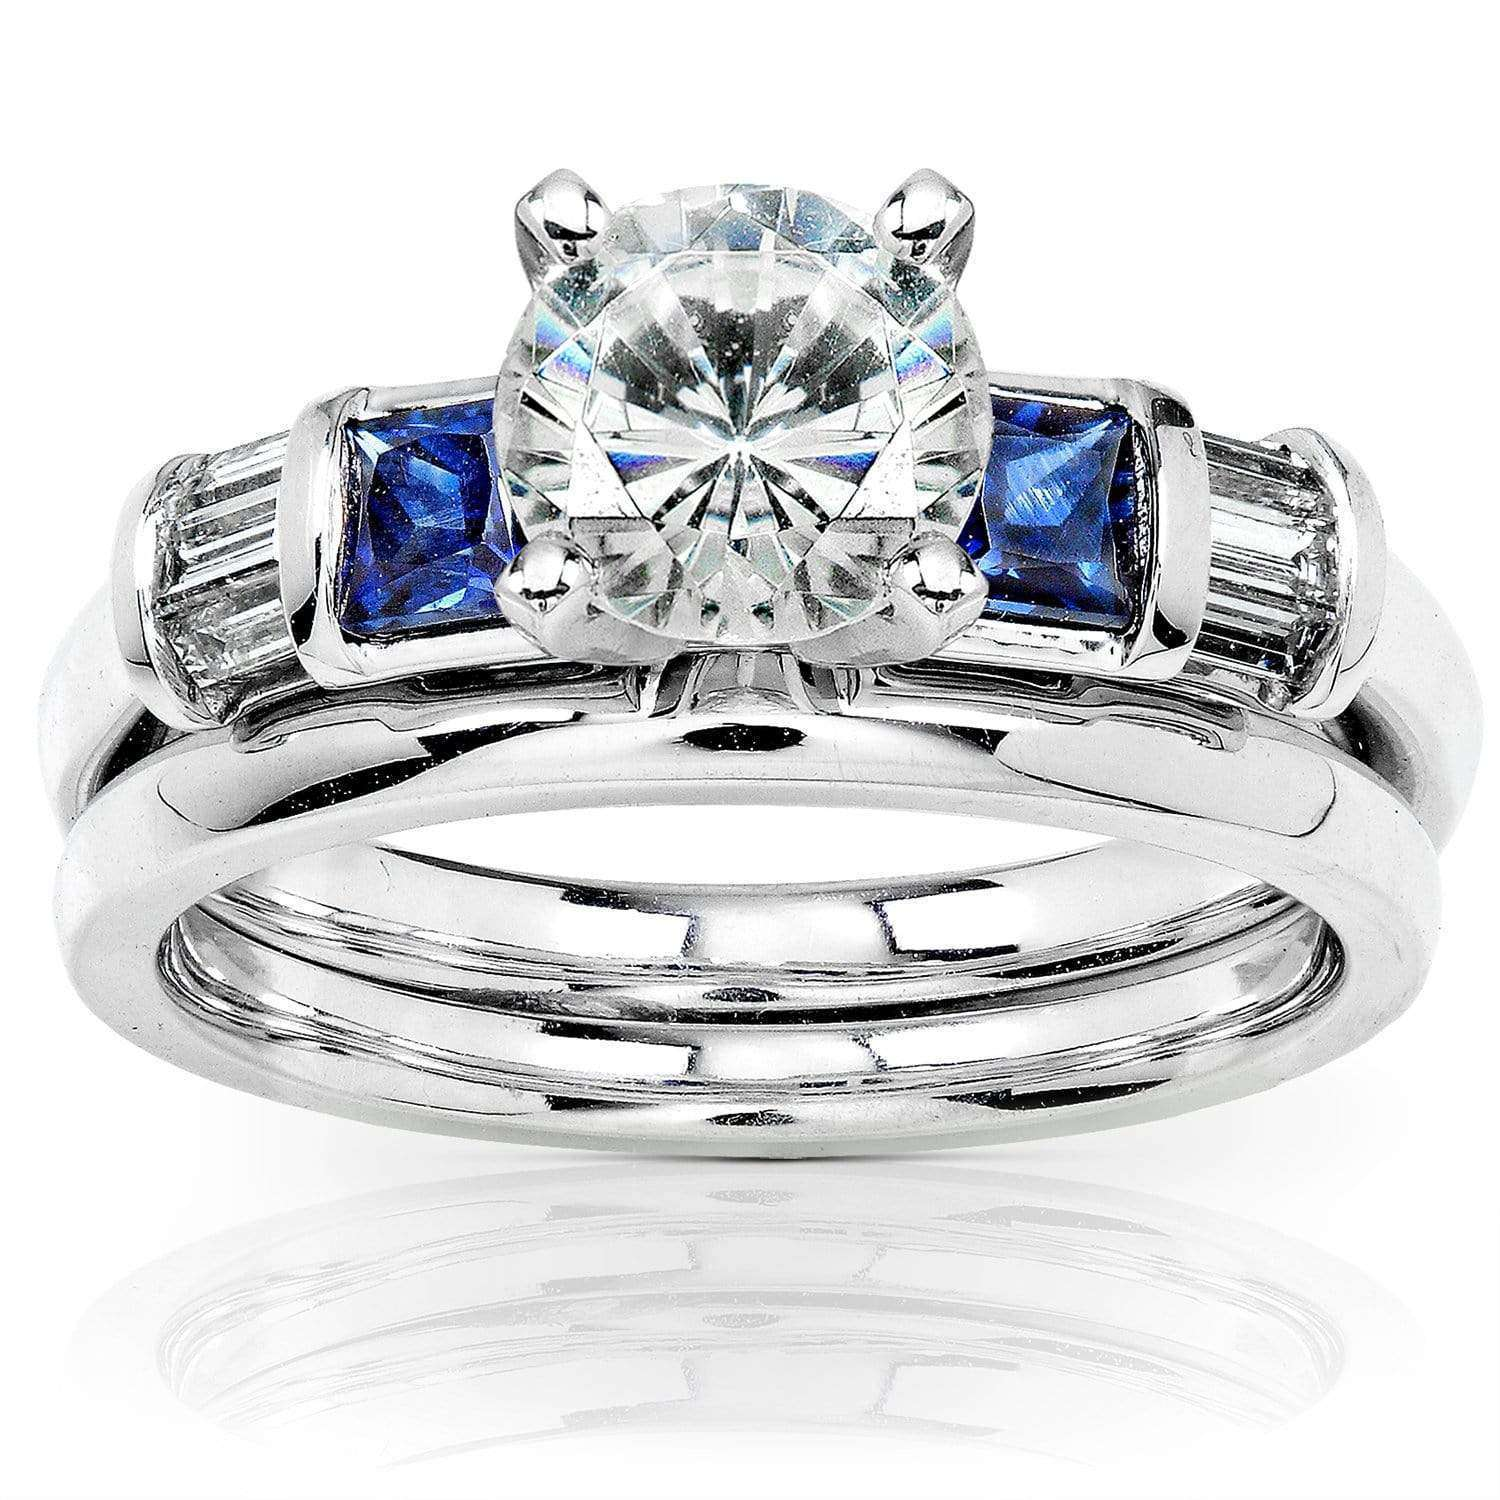 Coupons Round Moissanite Bridal Set with Sapphire and Diamond 2 CTW 14k White Gold - 8.5